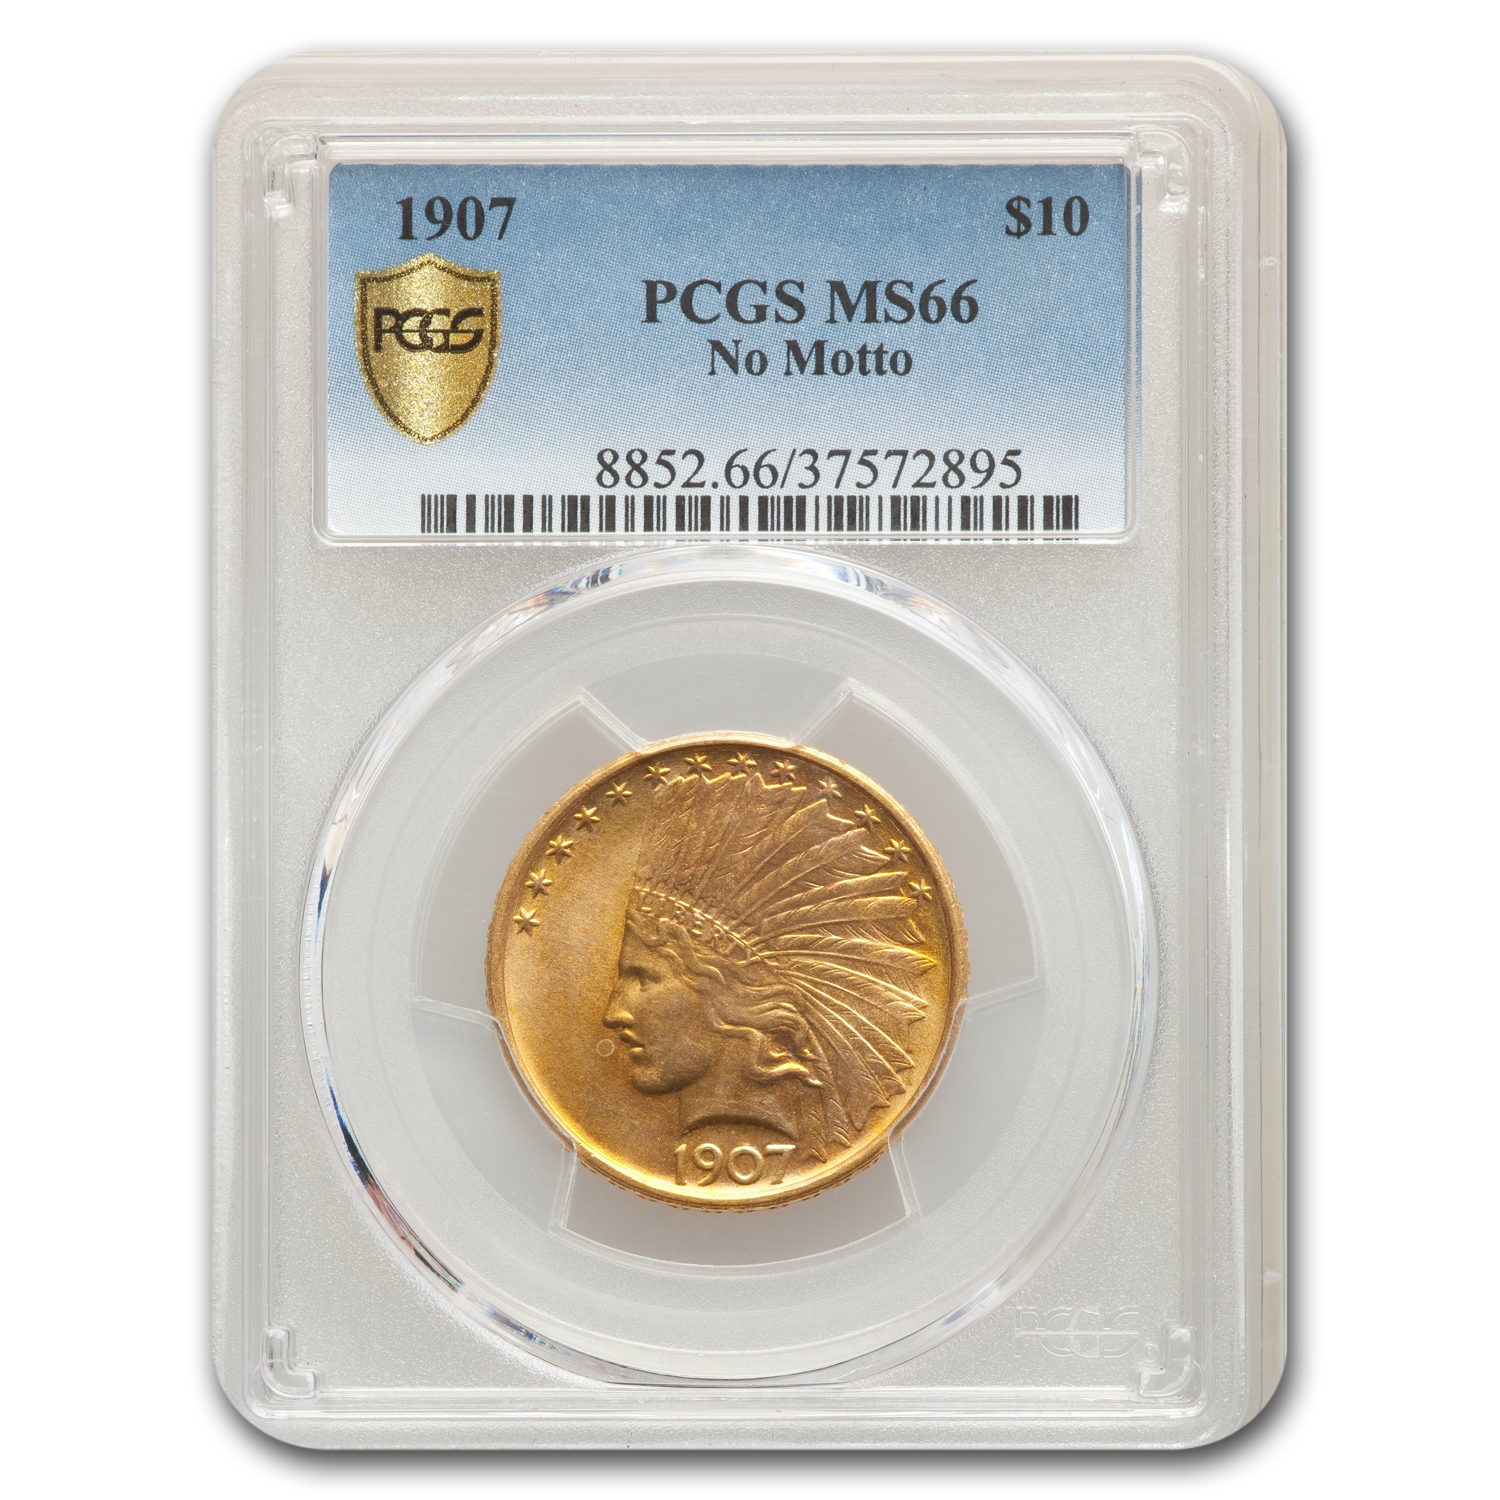 1907 $10 Indian Gold Eagle MS-66 PCGS